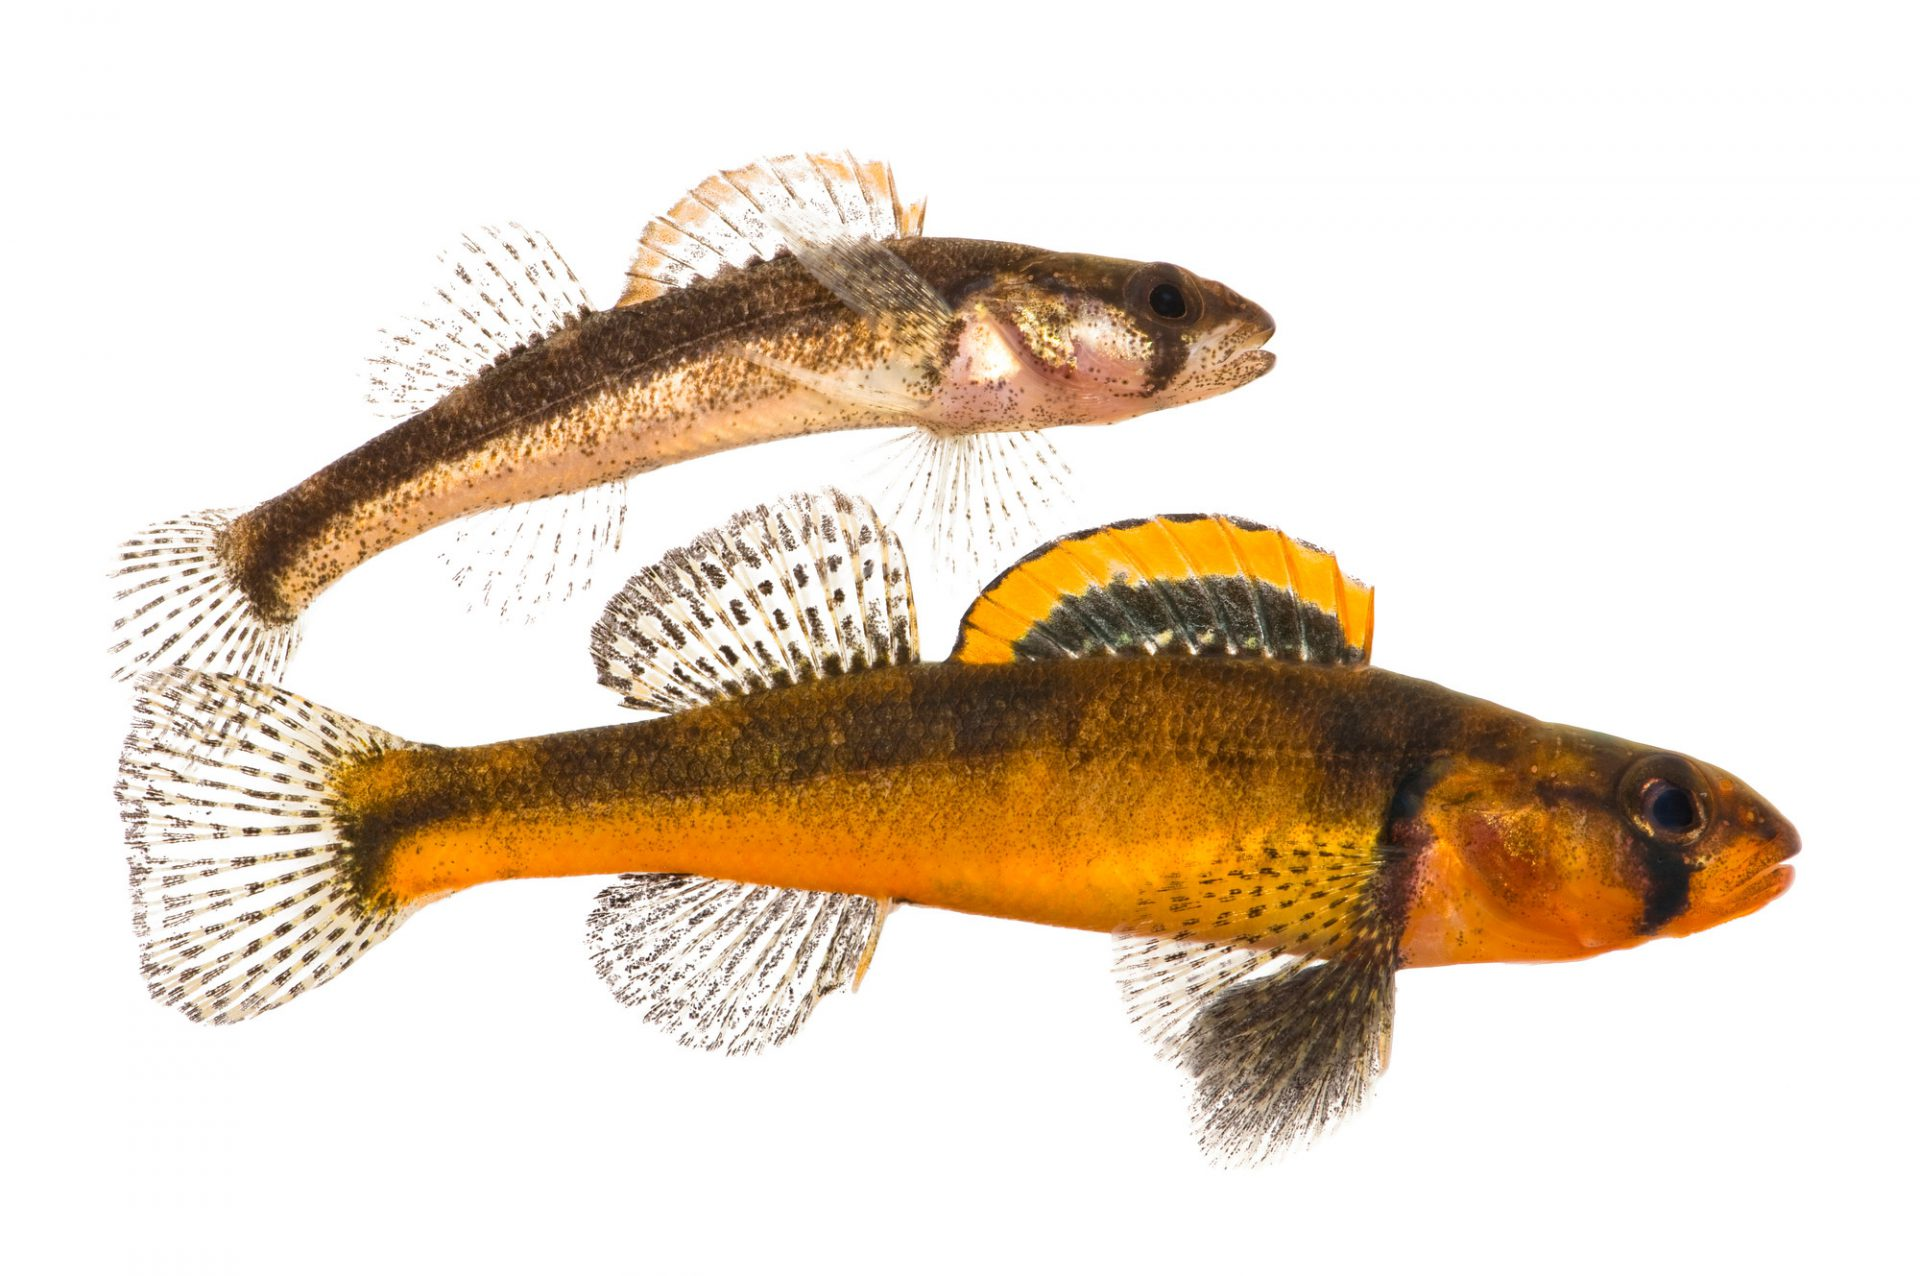 Slackwater darter (Etheostoma boschungi), an endangered (IUCN) and federally threatened species, at Conservation Fisheries, a native stream fish breeding center. The male is colorful and much larger than the female.